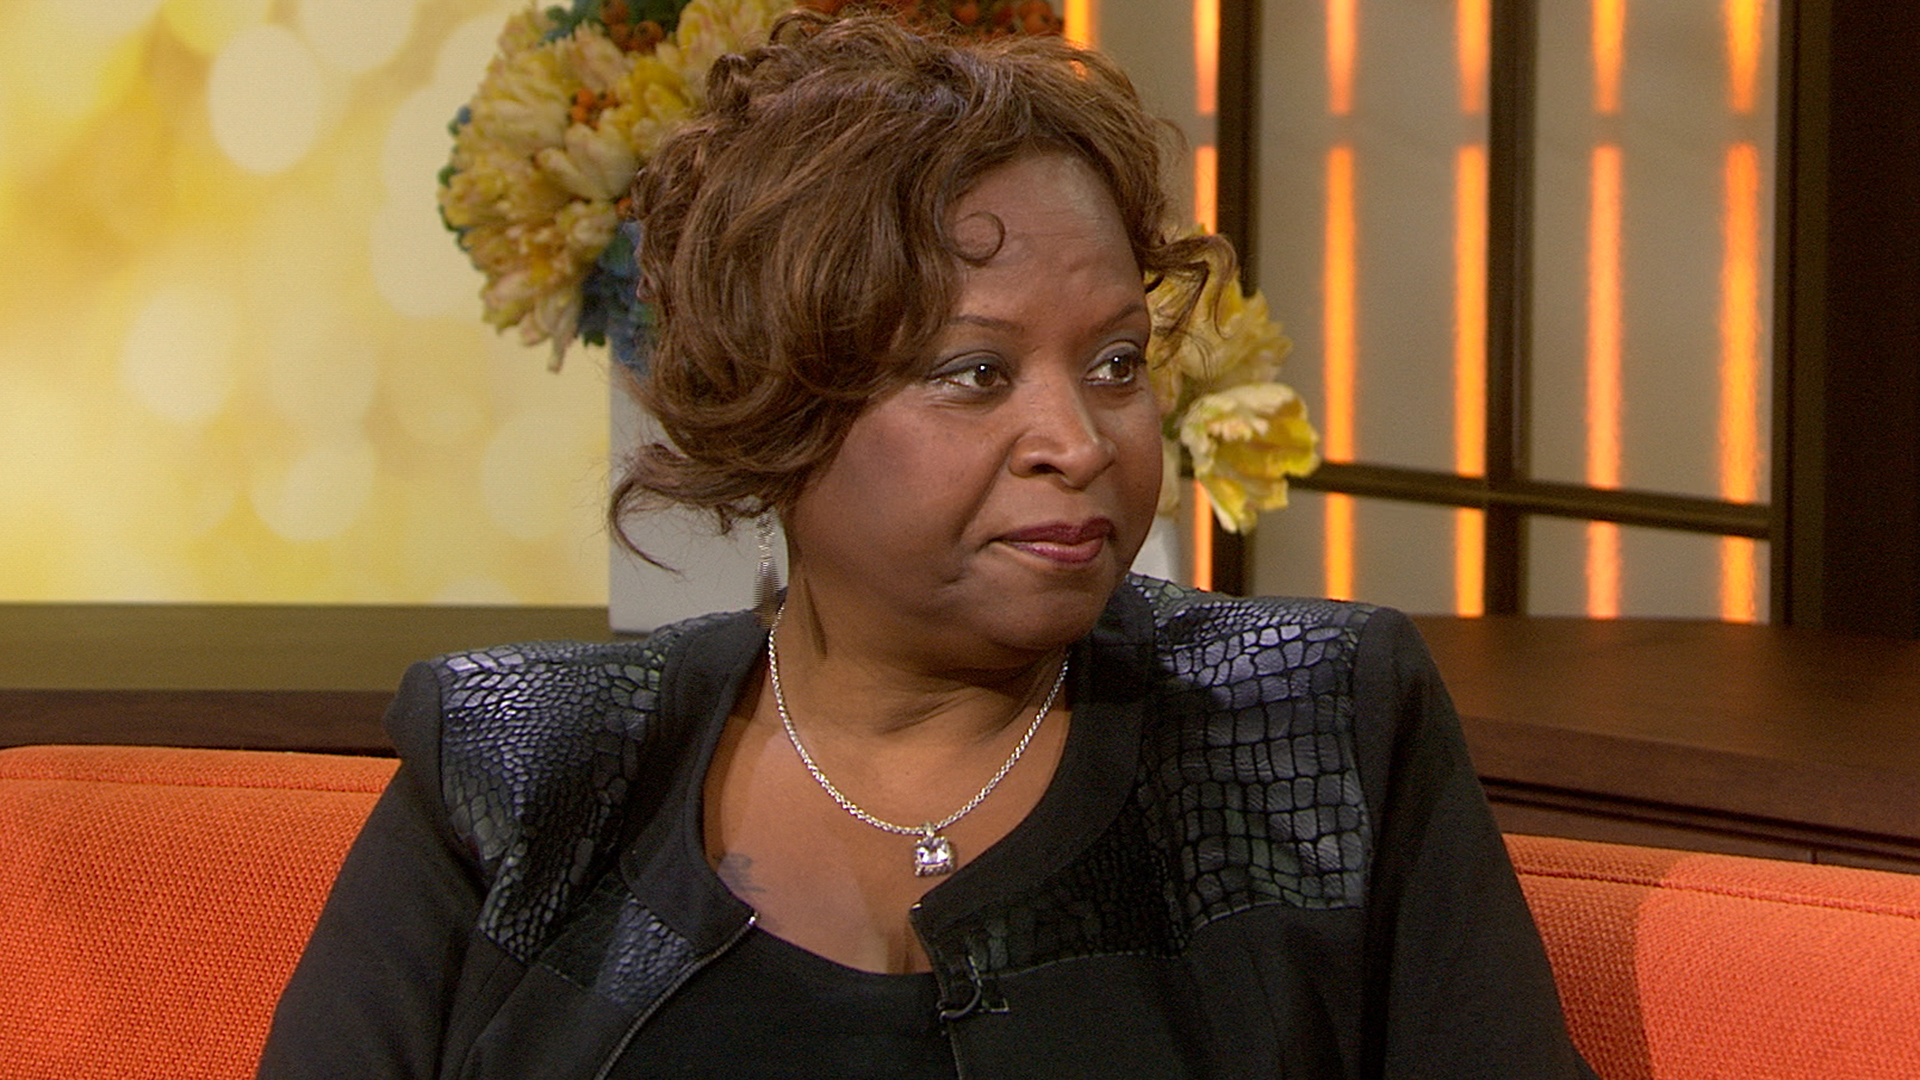 robin quivers boatrobin quivers 2016, robin quivers movie, robin quivers, robin quivers net worth, robin quivers cancer, robin quivers hello, robin quivers book, robin quivers salary, robin quivers house, robin quivers 2015, robin quivers niece, robin quivers mr x, robin quivers net worth 2015, robin quivers songs, robin quivers boyfriend, robin quivers twitter, robin quivers breasts, robin quivers sings adele, robin quivers boat, robin quivers health